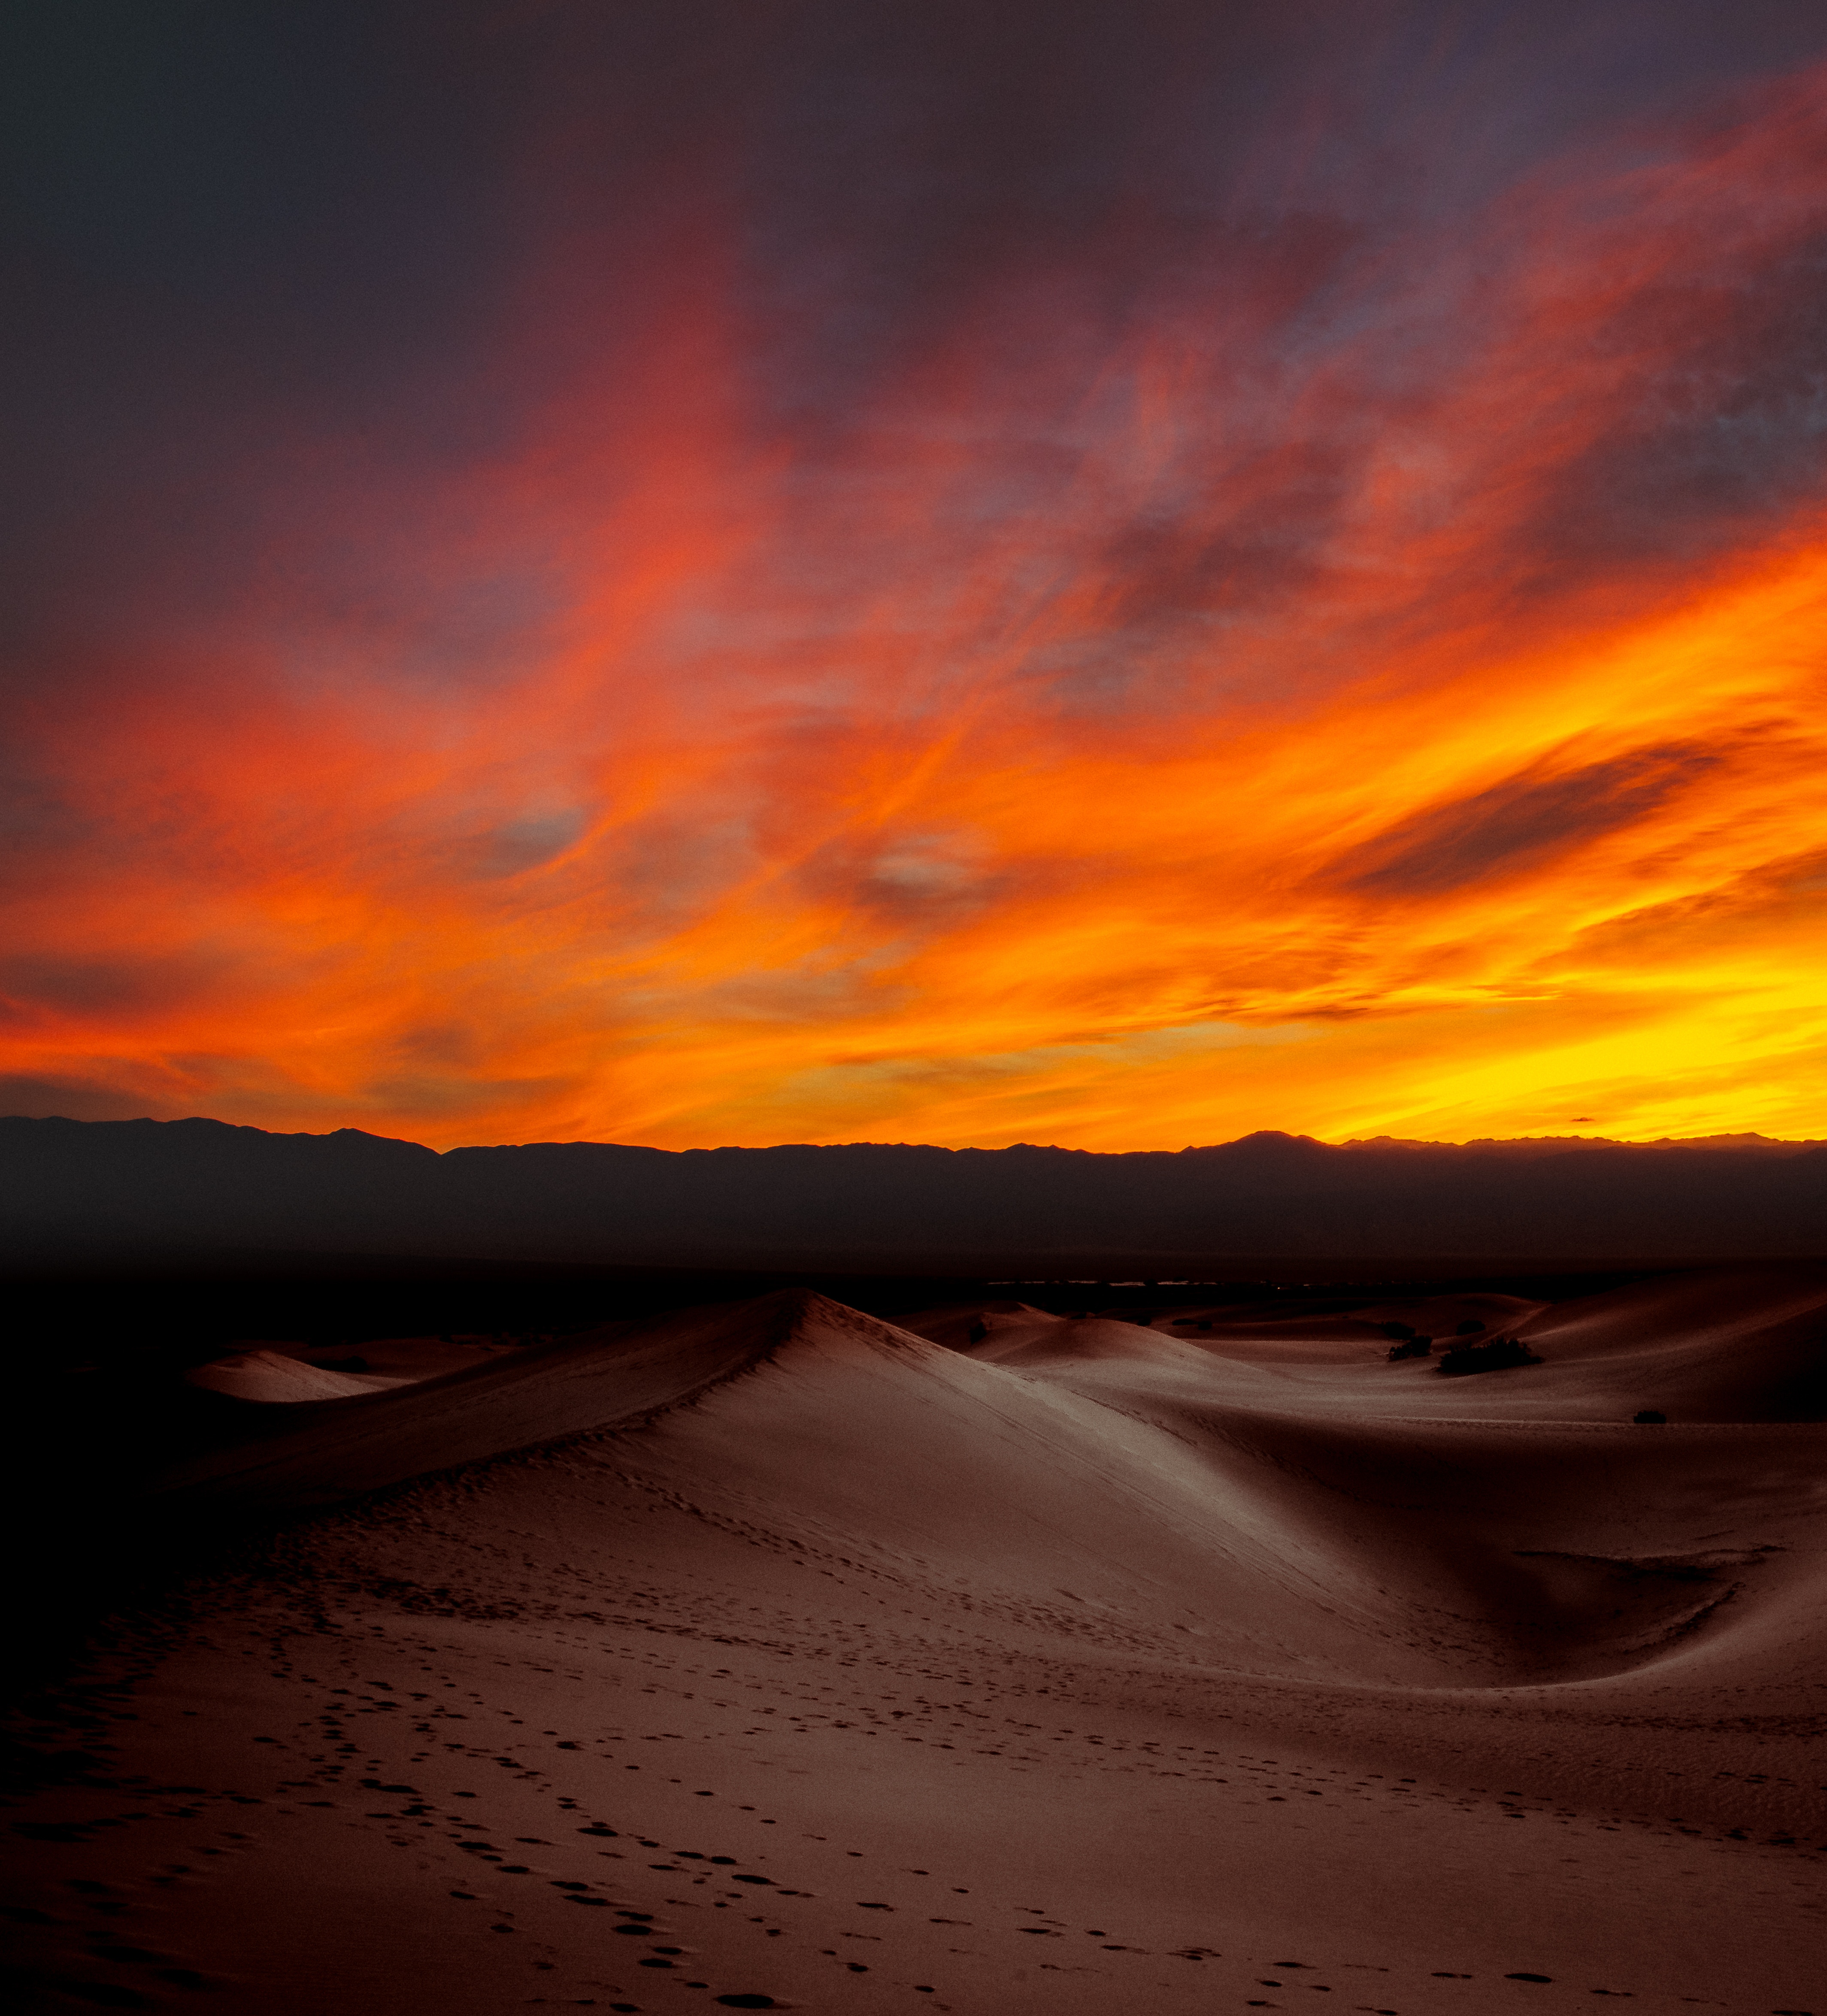 Burning Sunset Dark Desert 4k, HD Nature, 4k Wallpapers